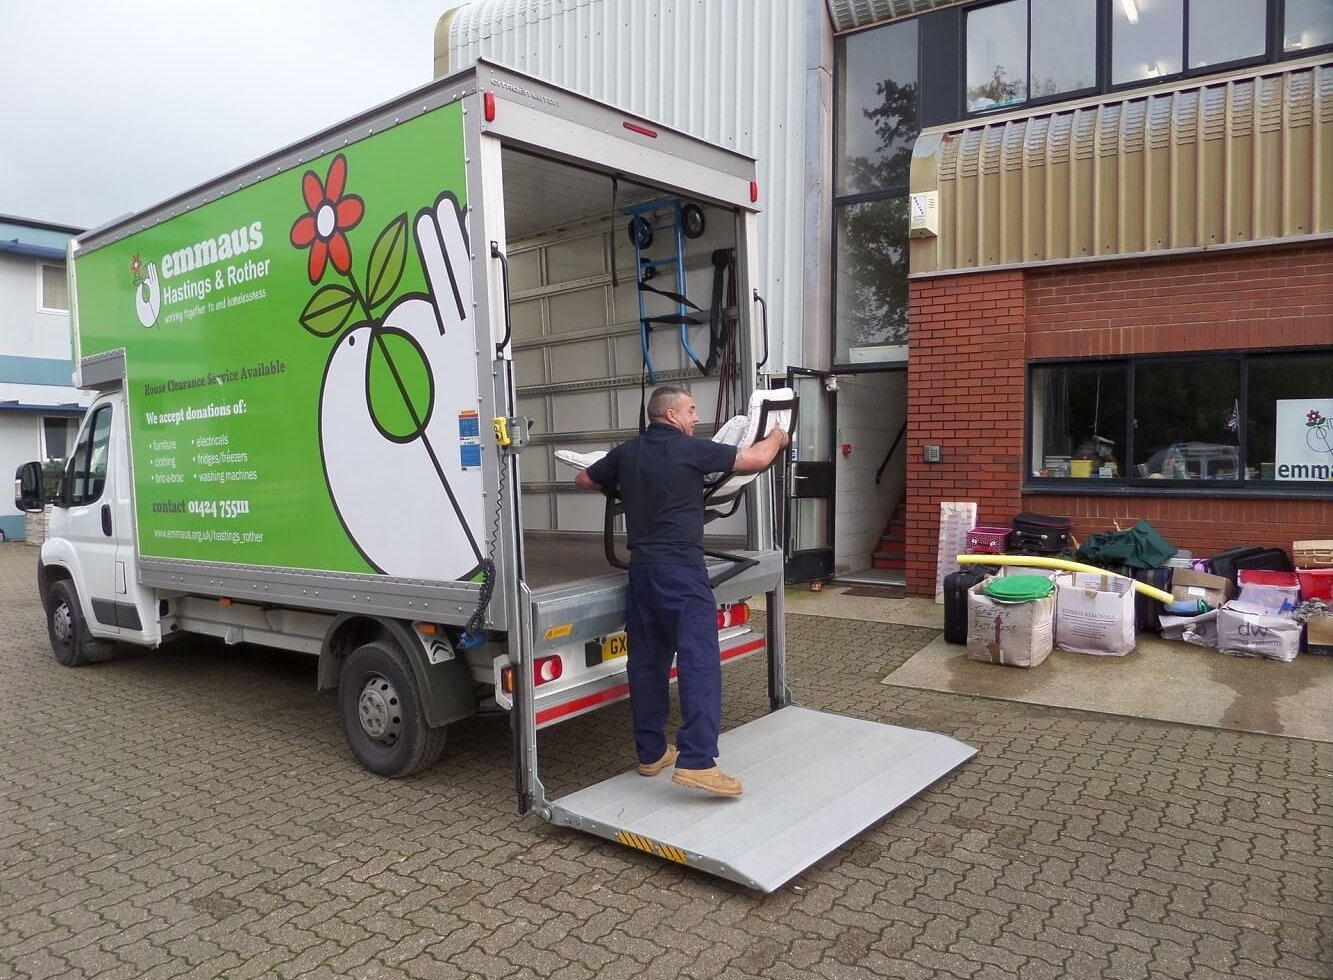 Donating goods to Emmaus Hastings & Rother